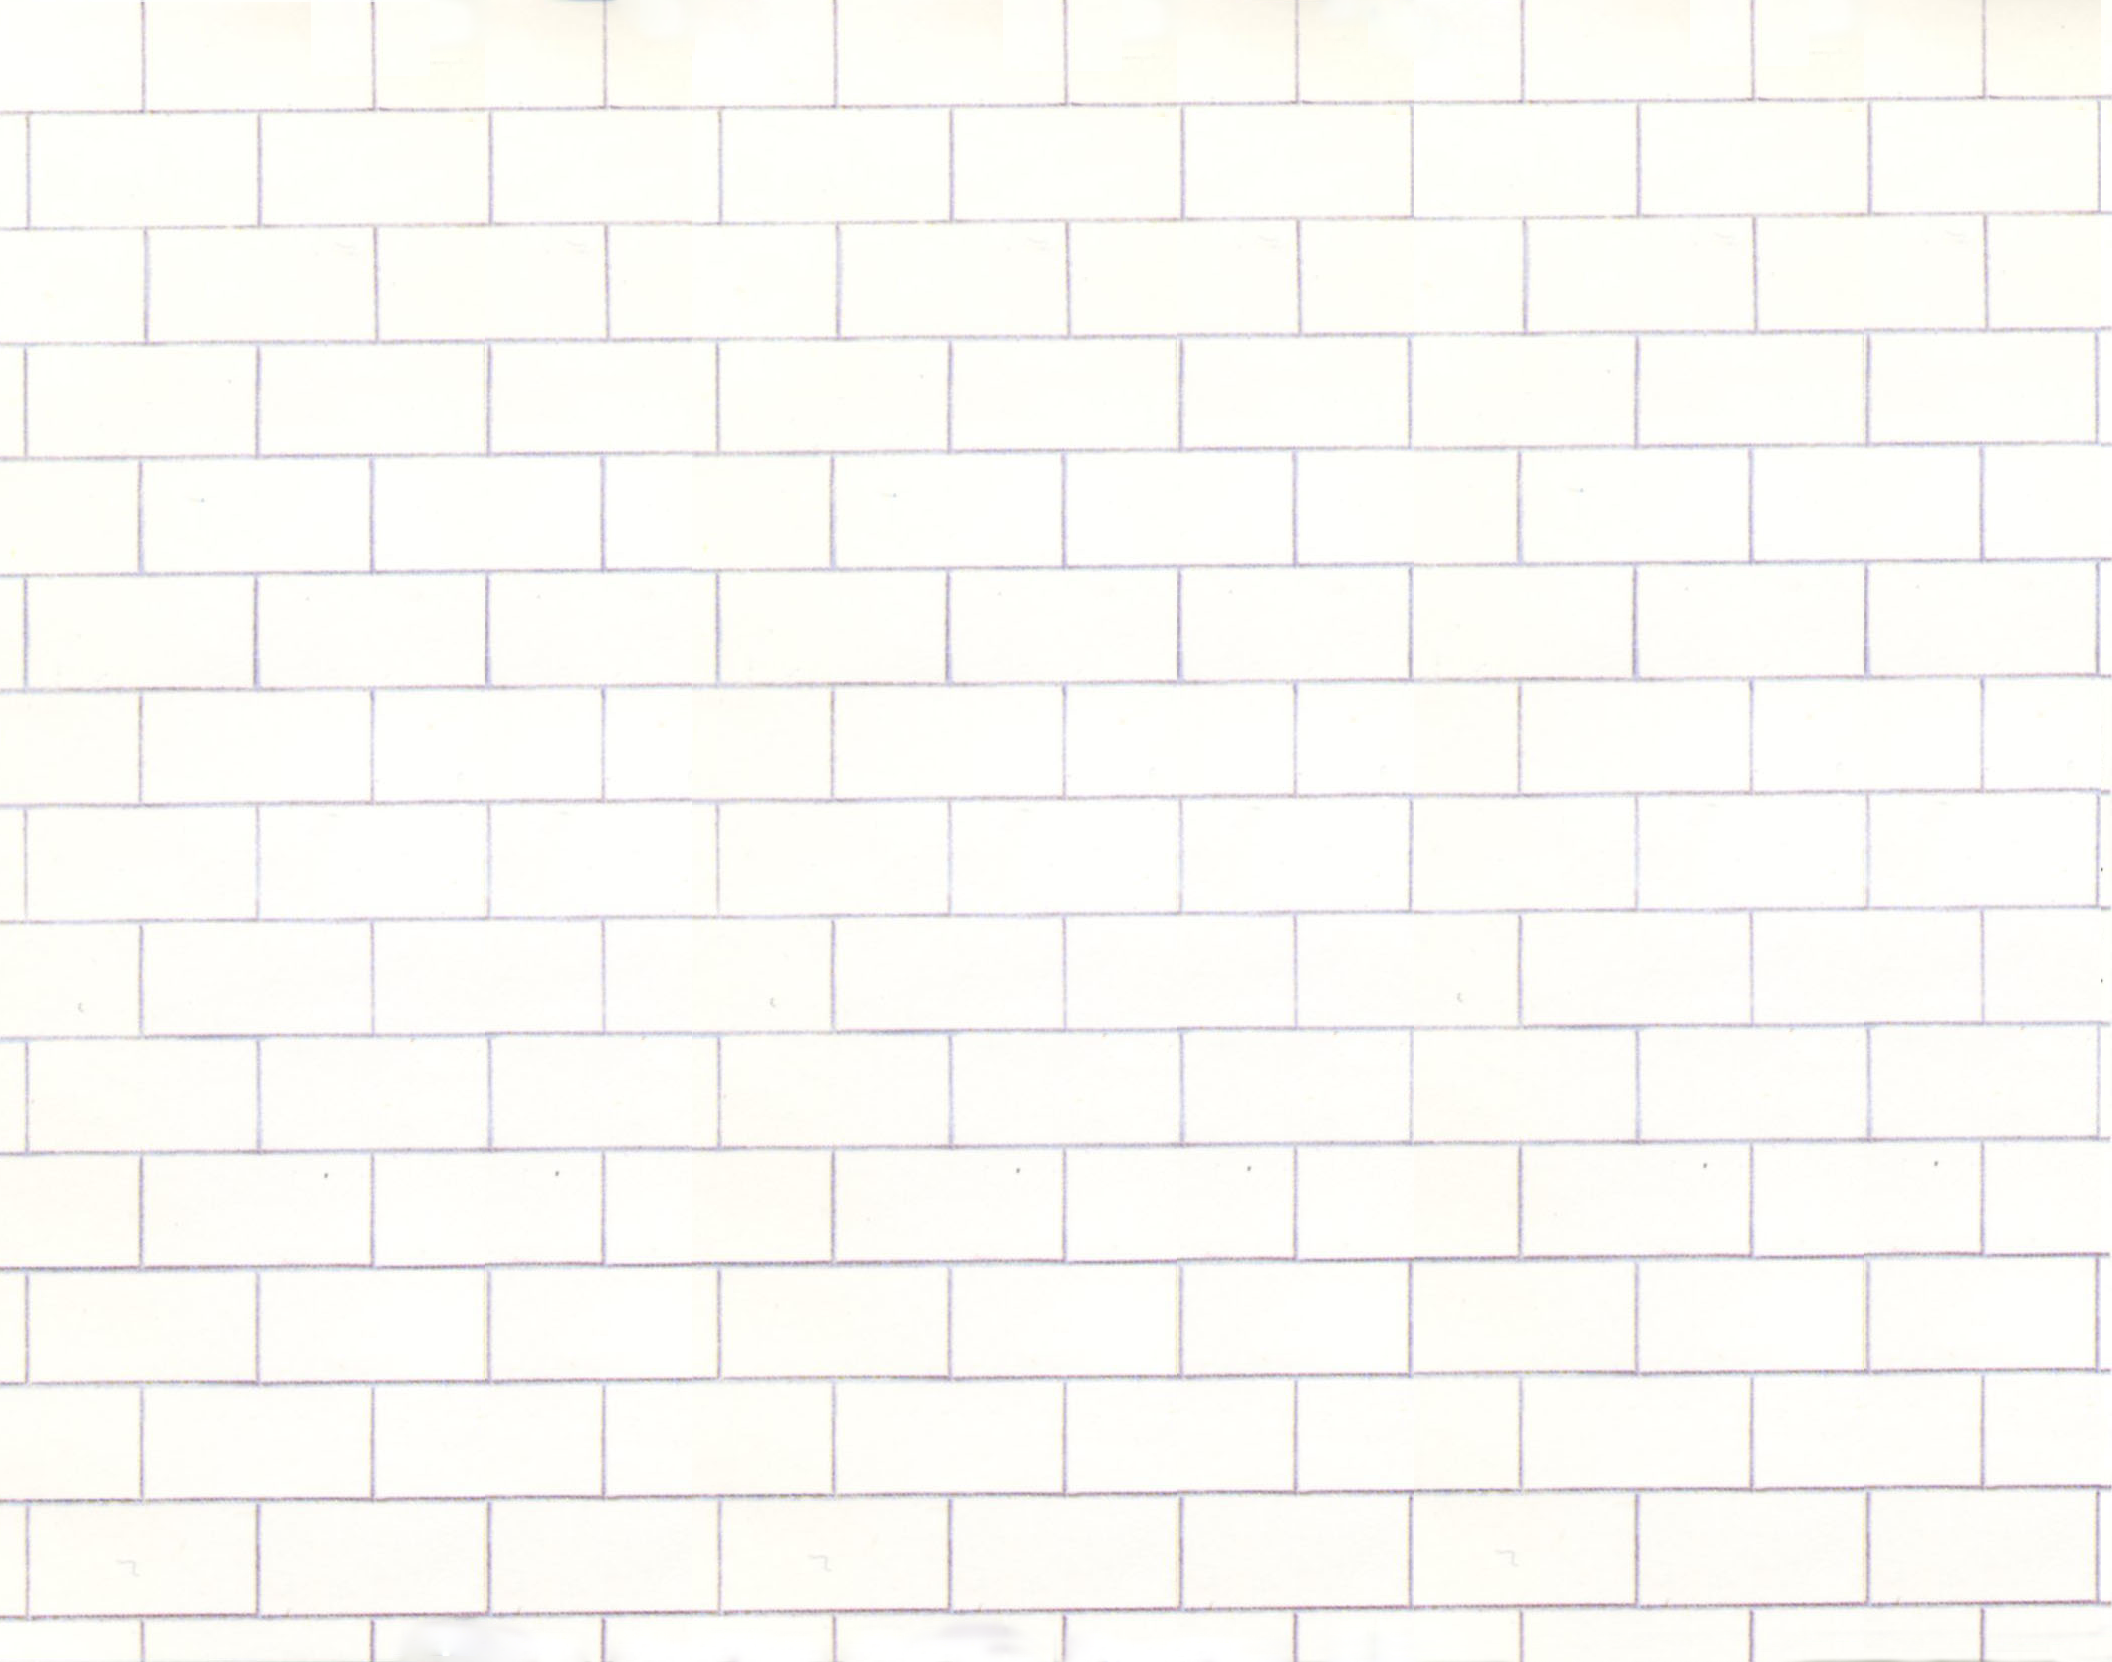 White Brick Textures Patterns Photoshop Freecreatives Wall Decoration  Picture. university interior design courses. home PlusPng.com  - Wall PNG Black And White